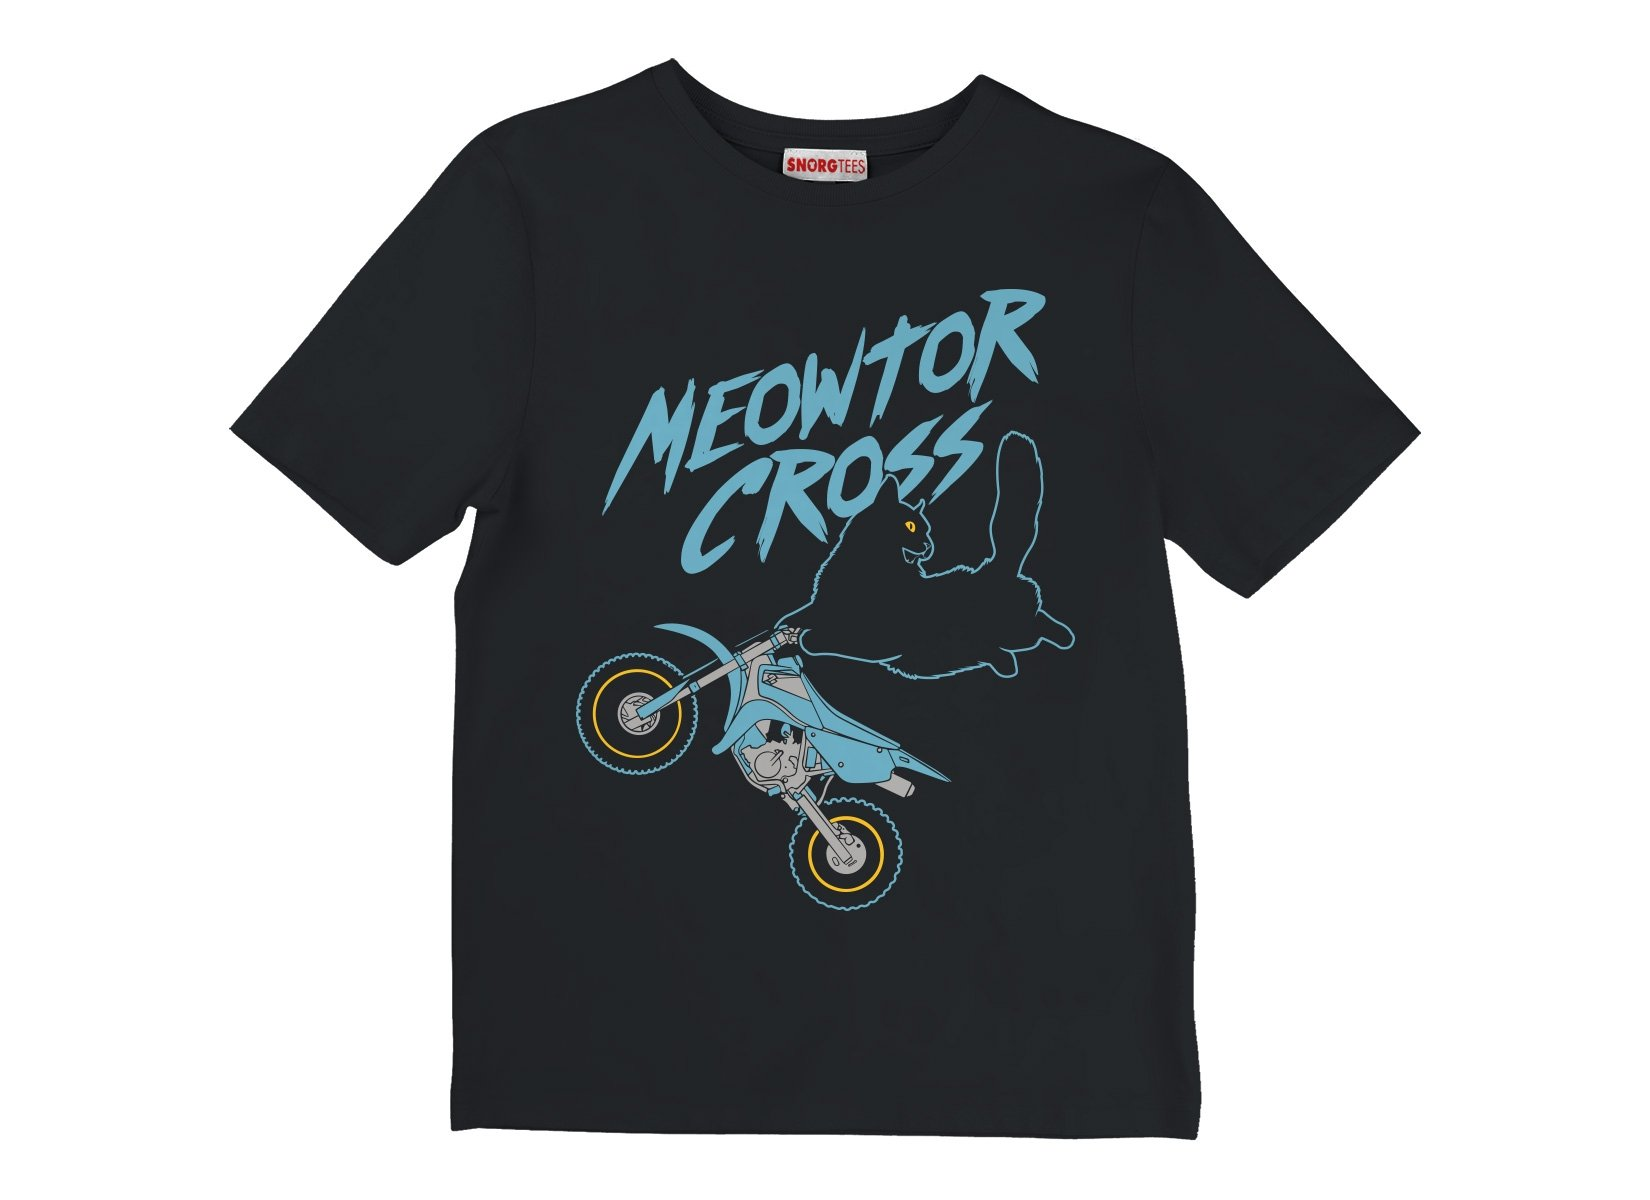 Meowtor Cross on Kids T-Shirt